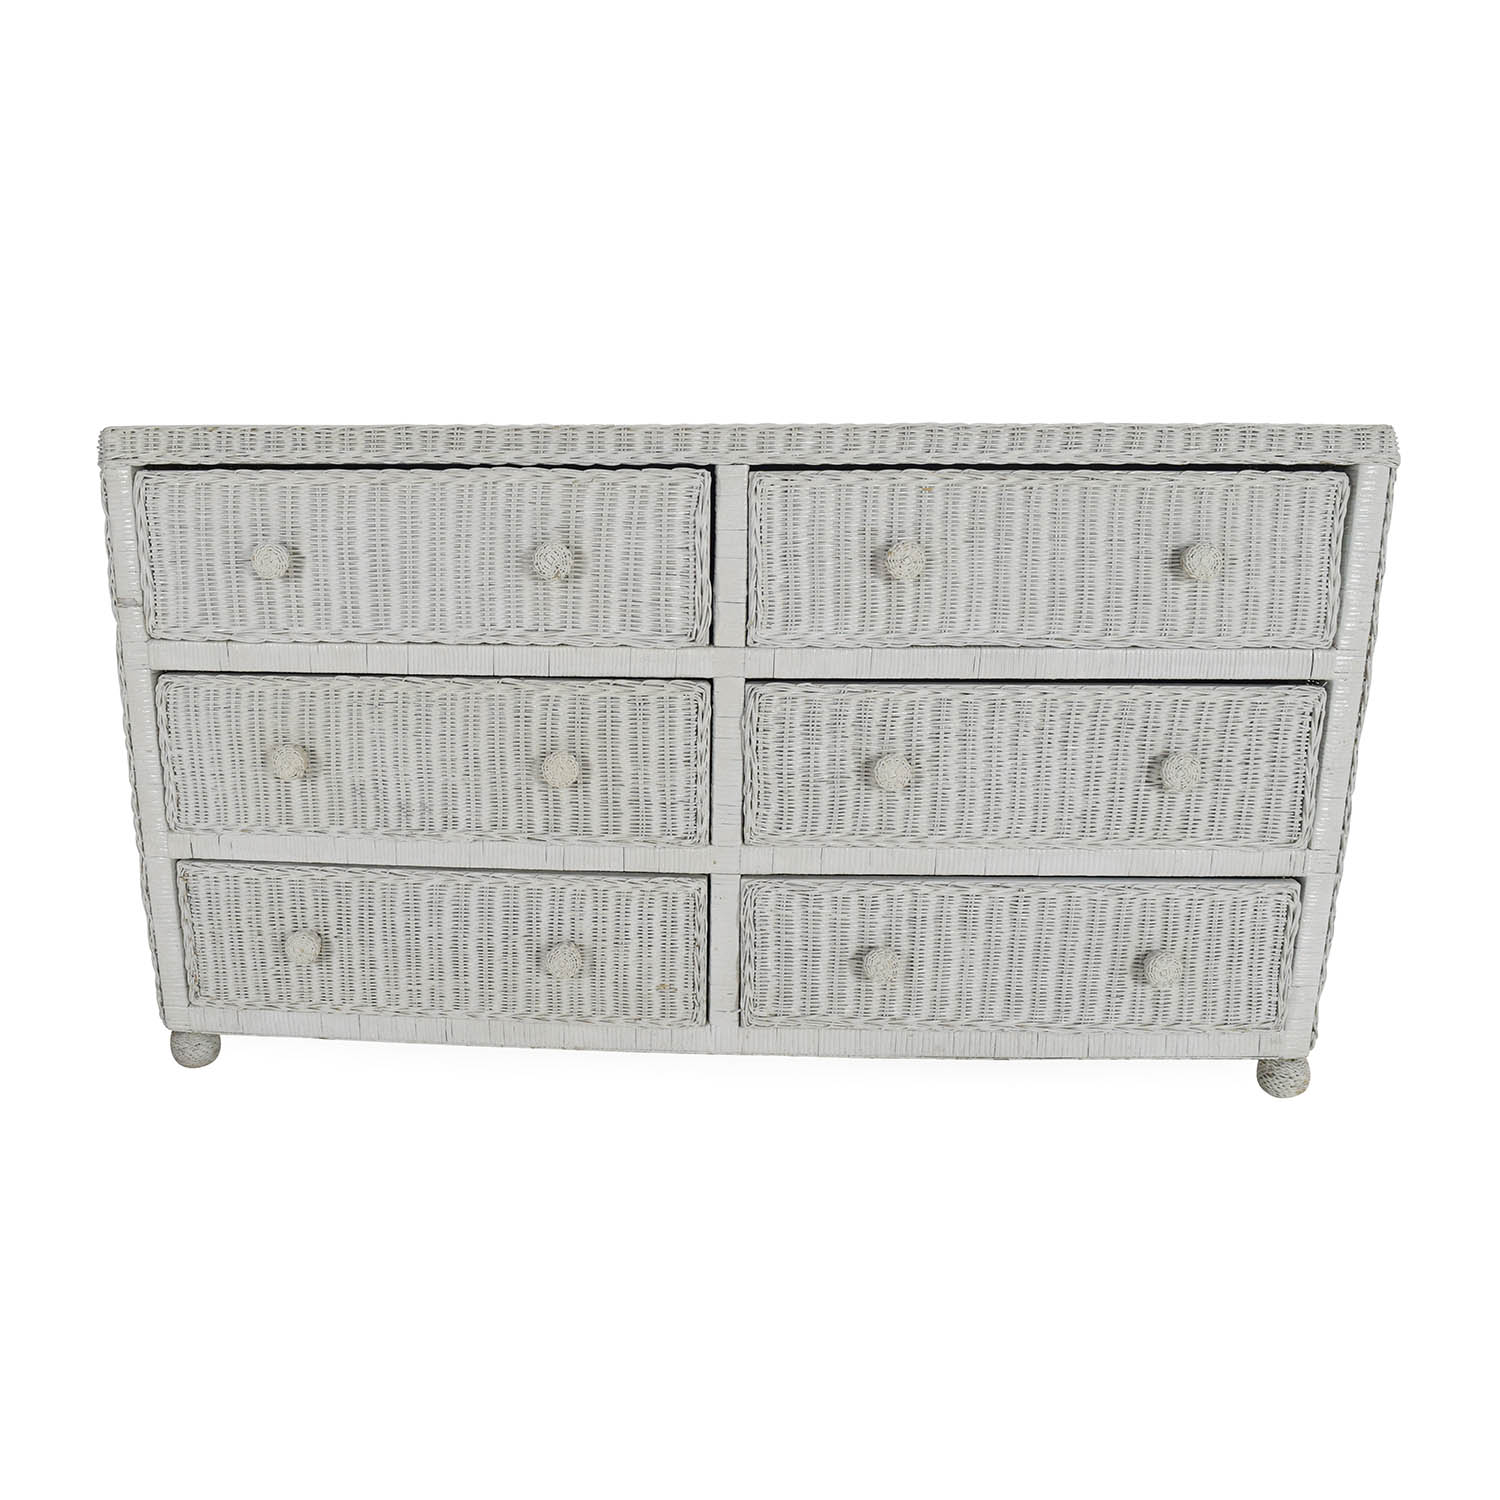 80% OFF - ElanaMar Designs Elana Mar White Wicker Dresser / Storage